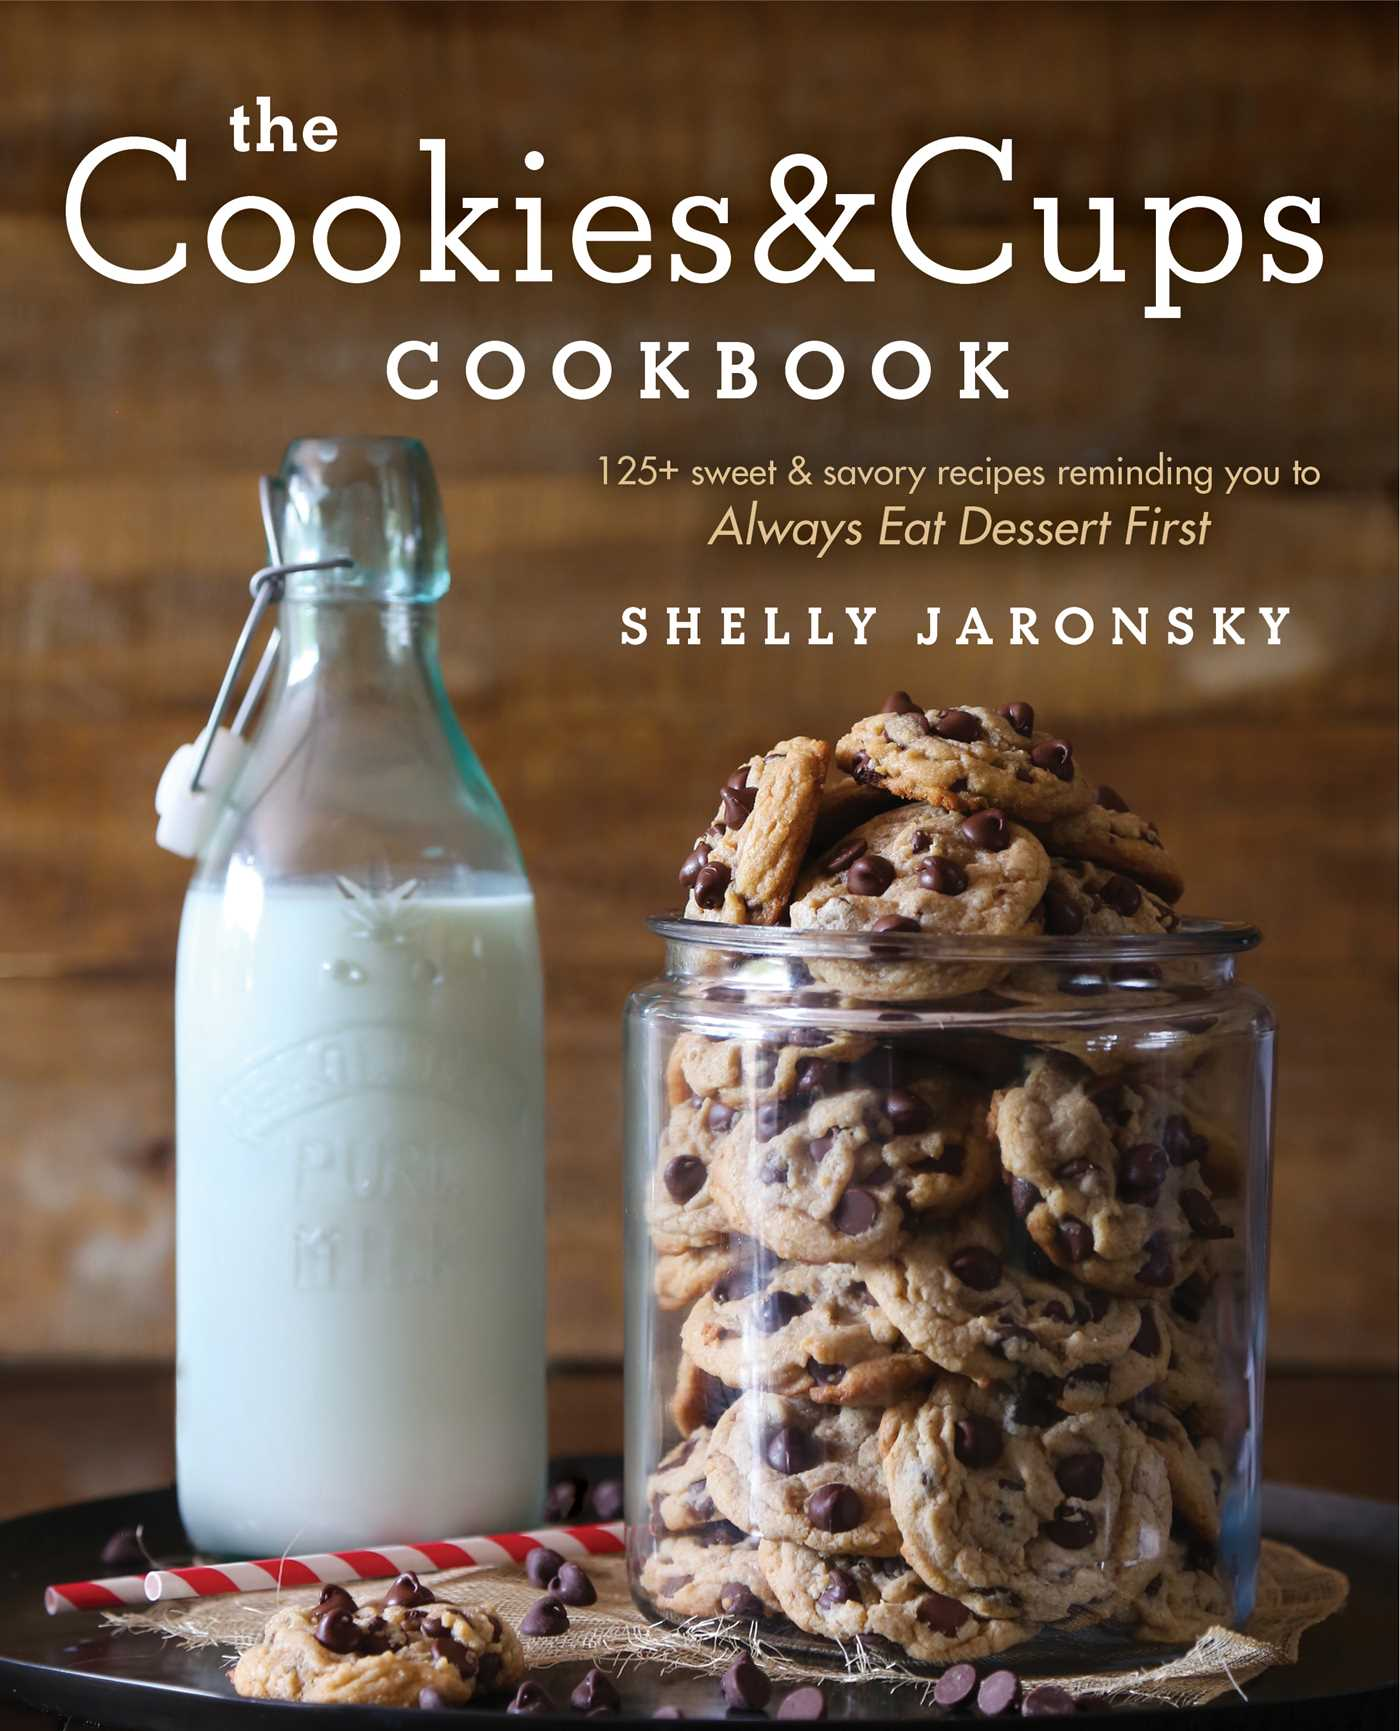 The cookies cups cookbook 9781501102516 hr